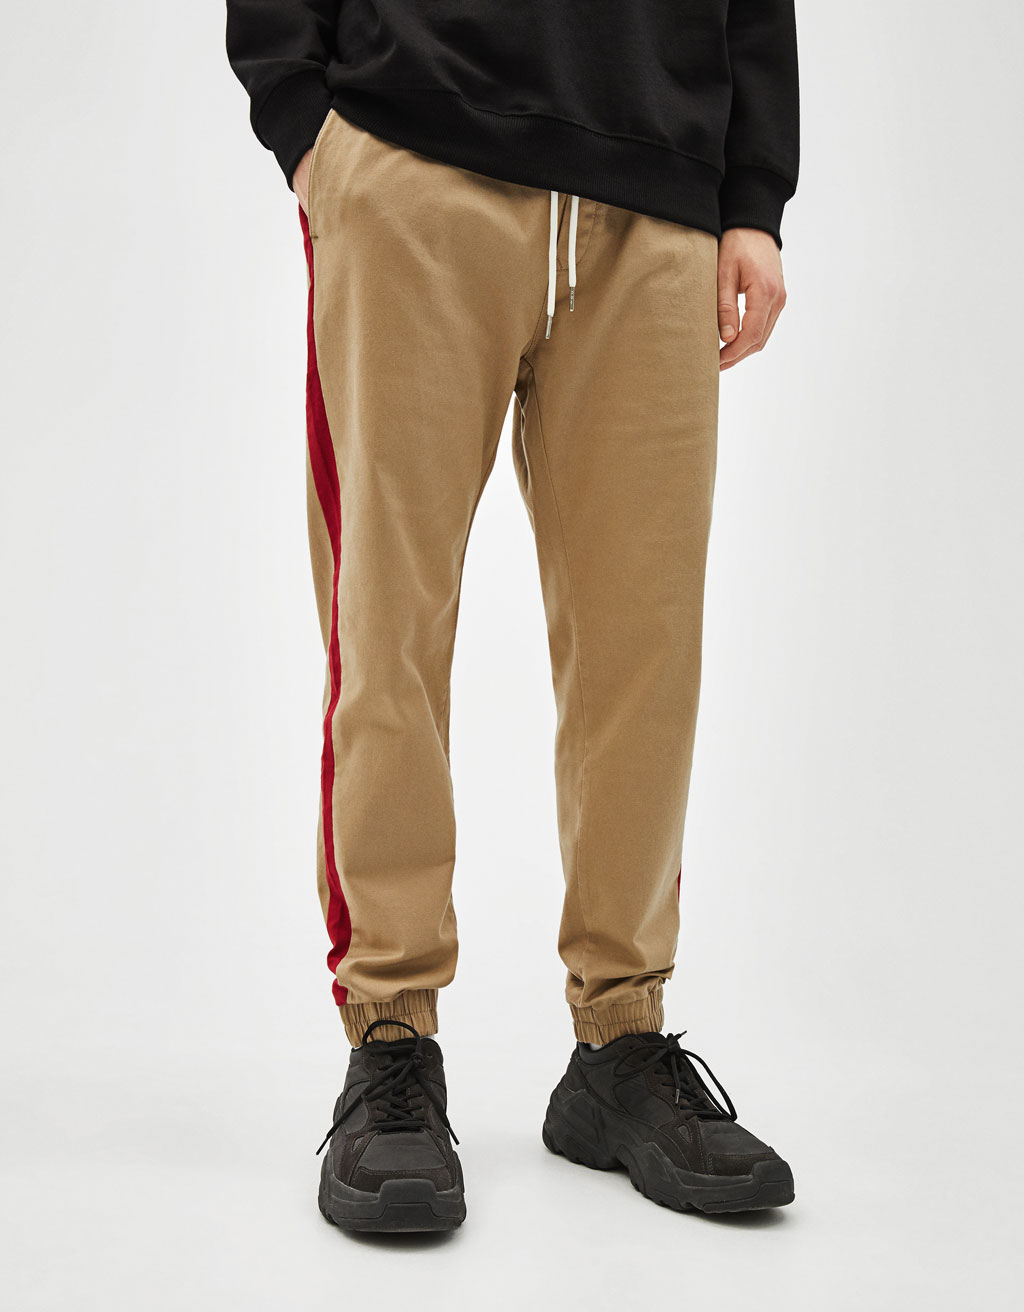 Slim Fit jogging trousers